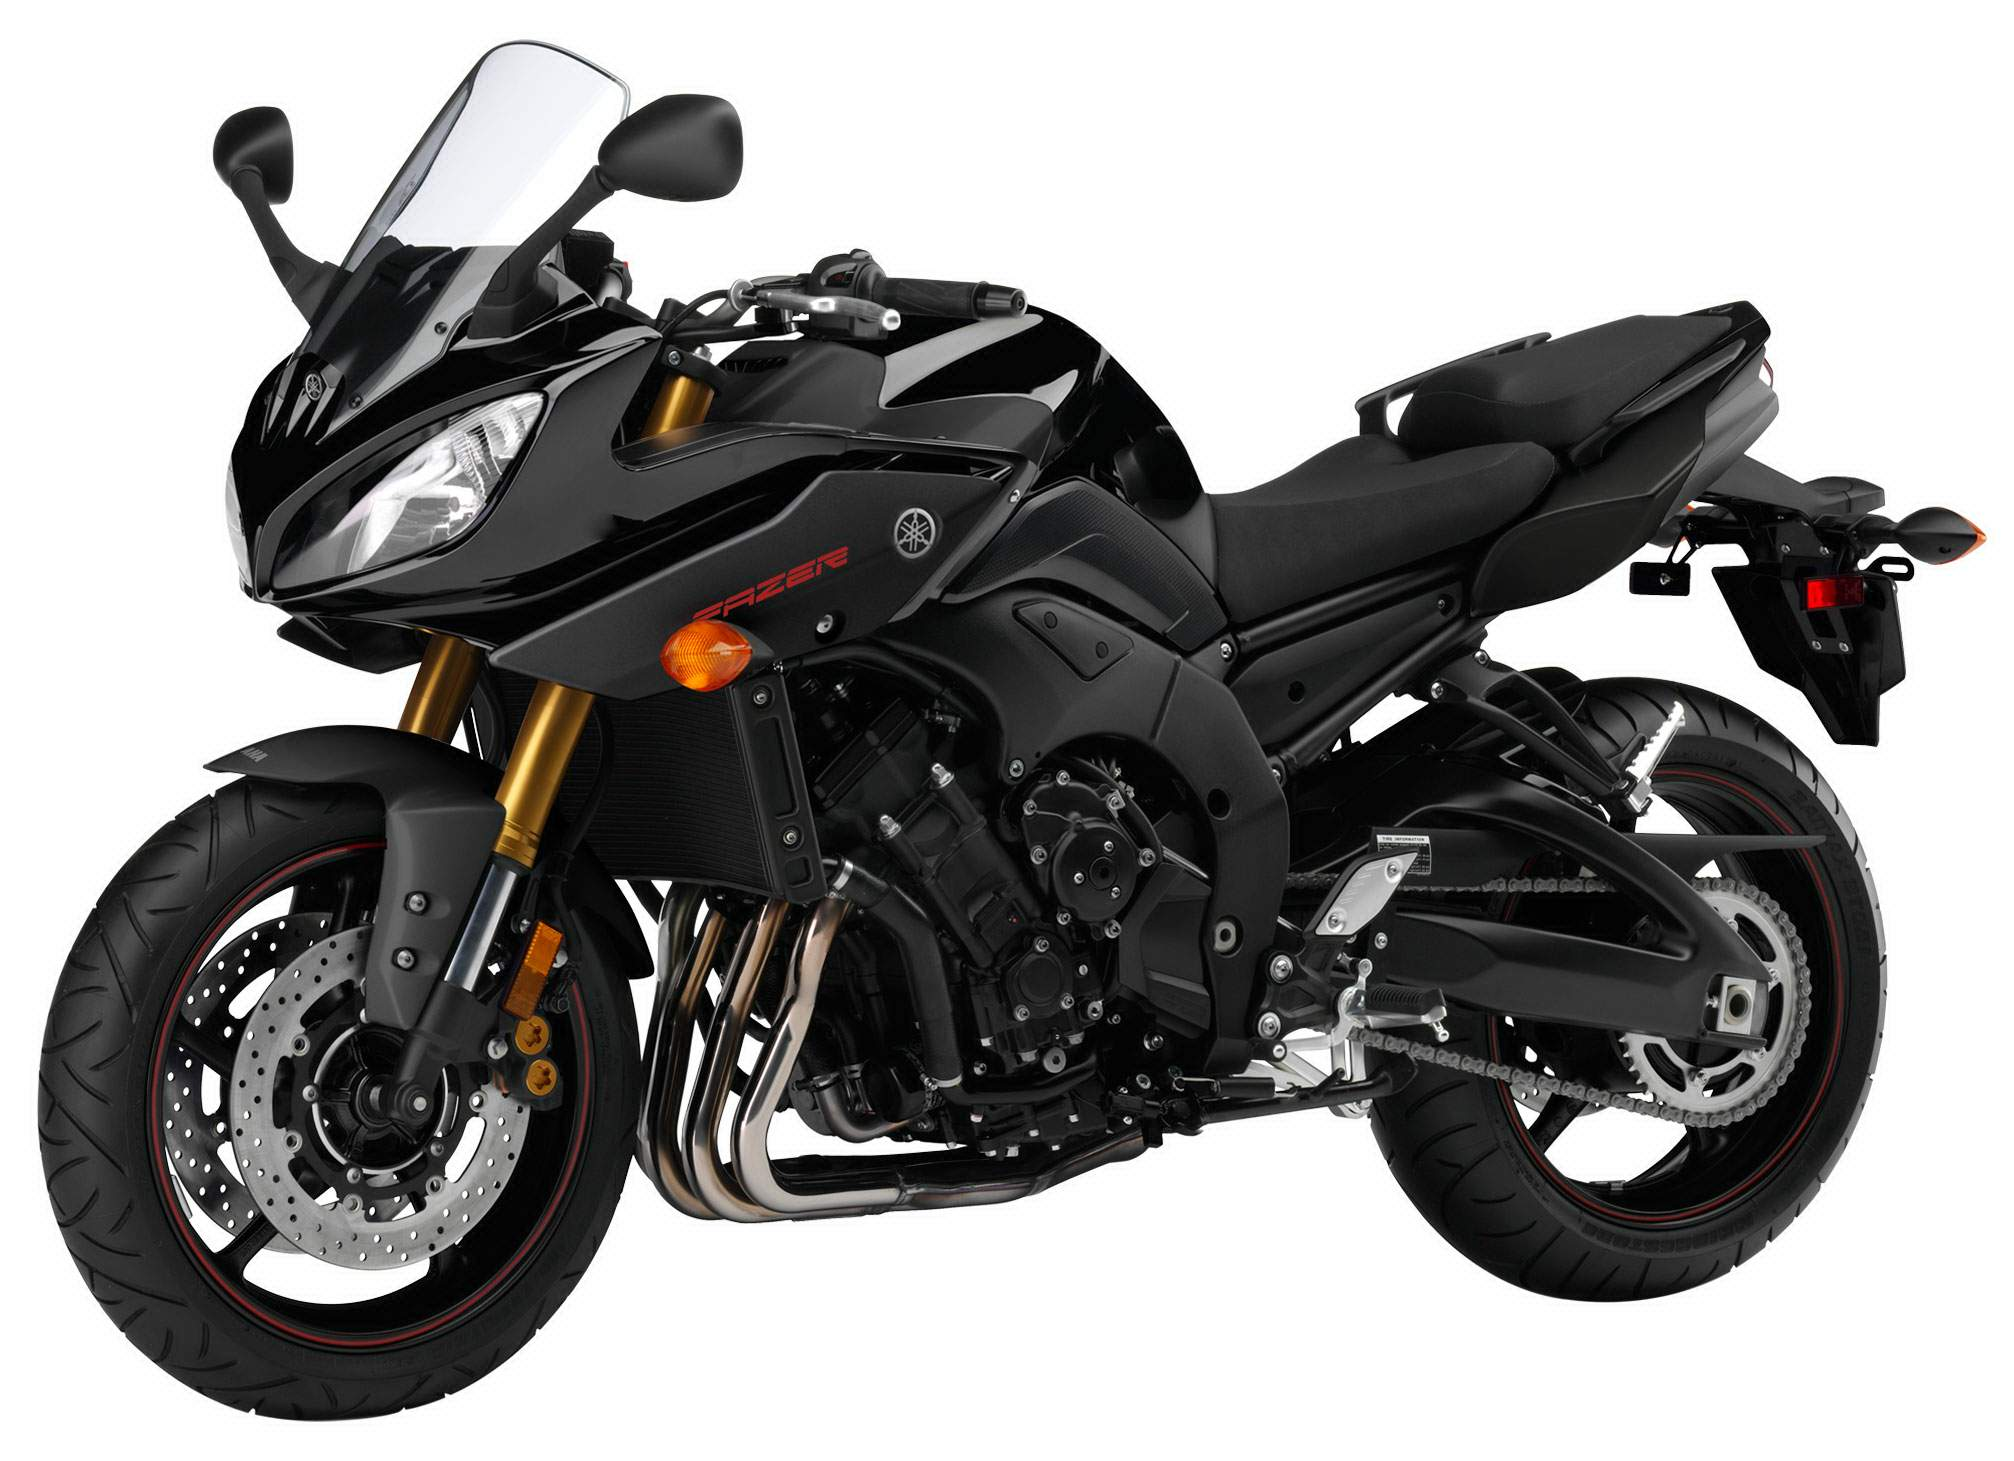 yamaha fz 8 fazer specs 2013 2014 autoevolution. Black Bedroom Furniture Sets. Home Design Ideas